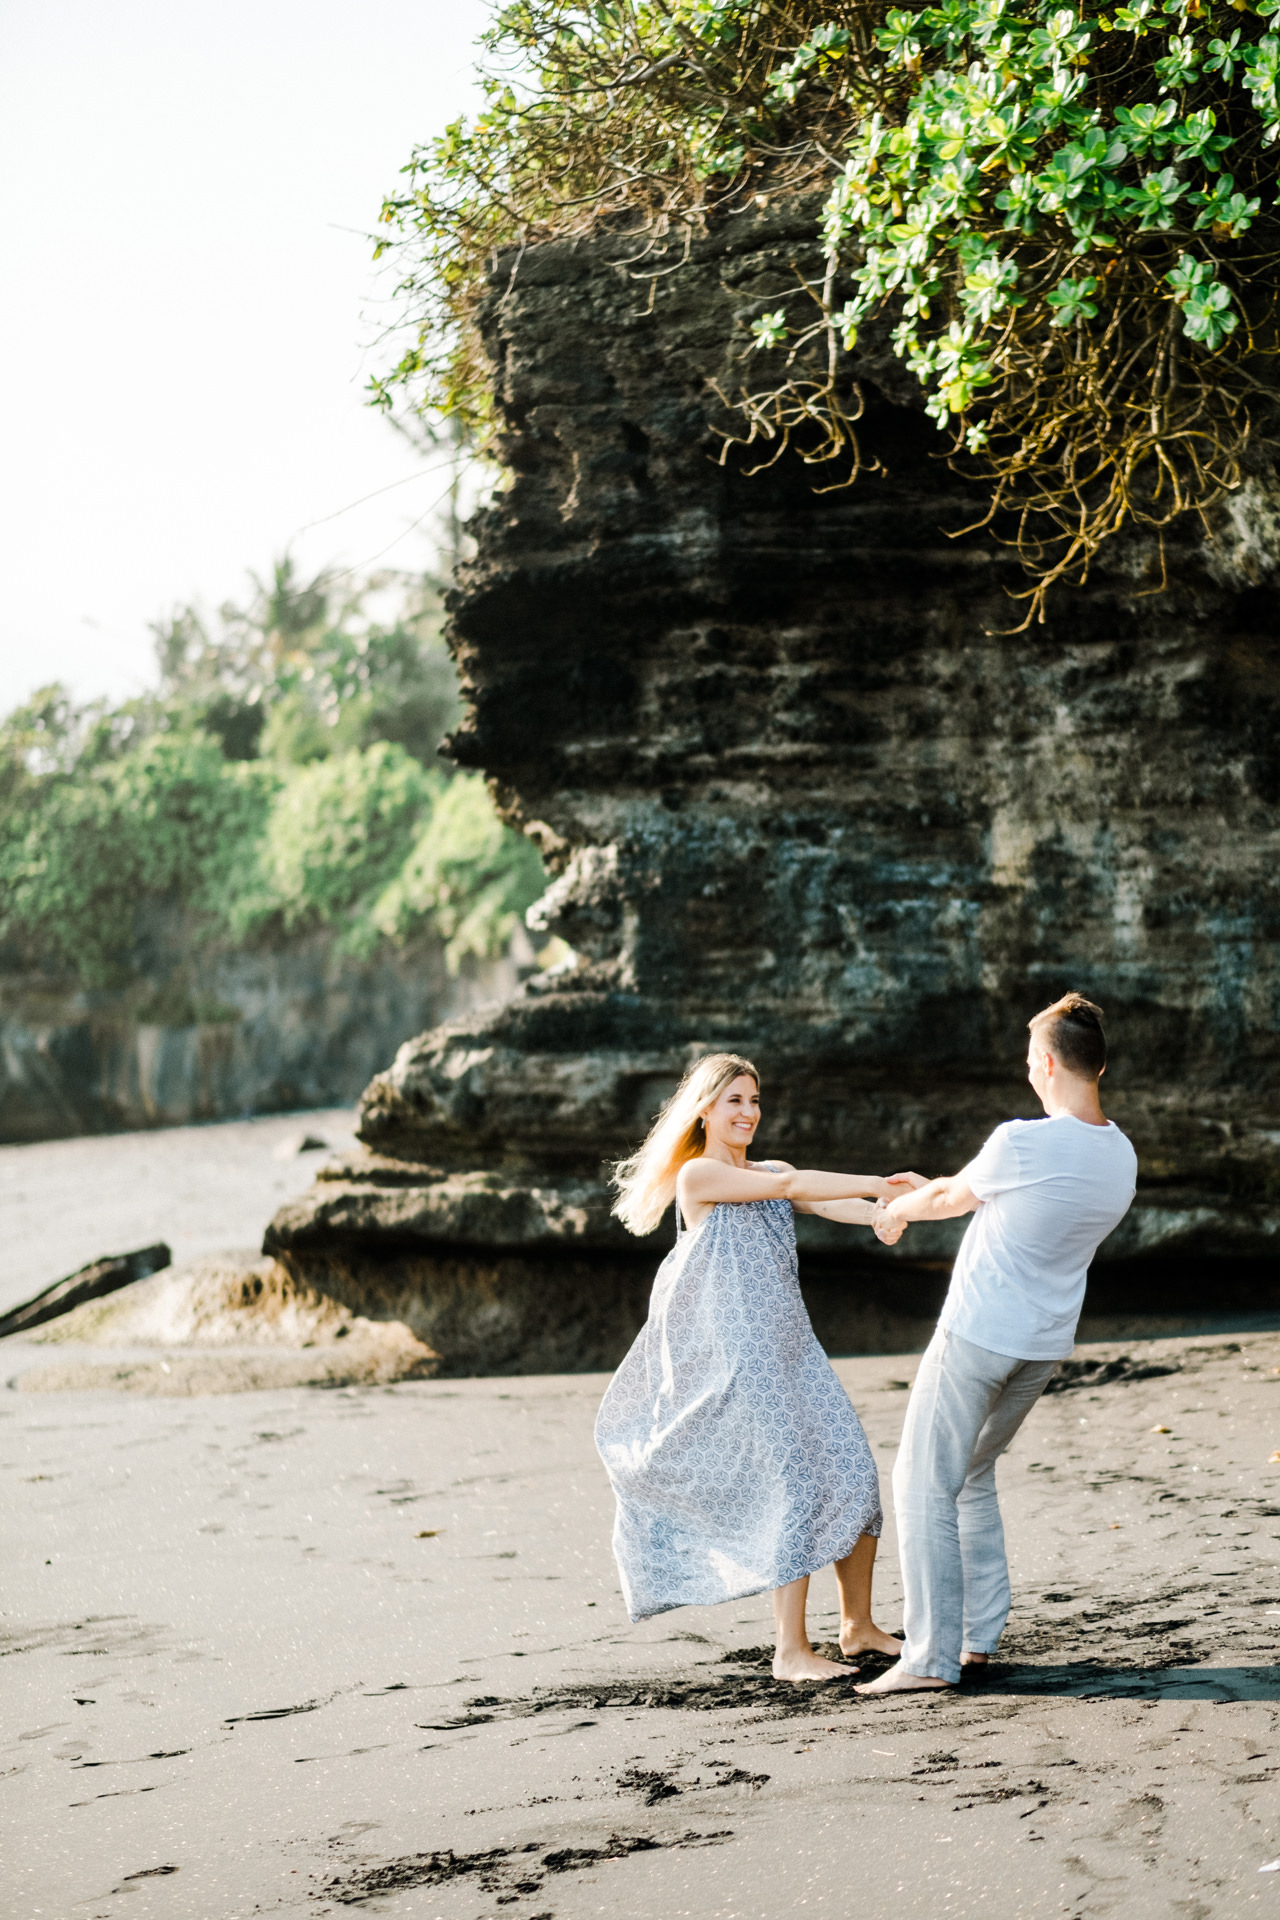 Bali Honeymoon Photographer | Joanna and Jakub's in Bali 11